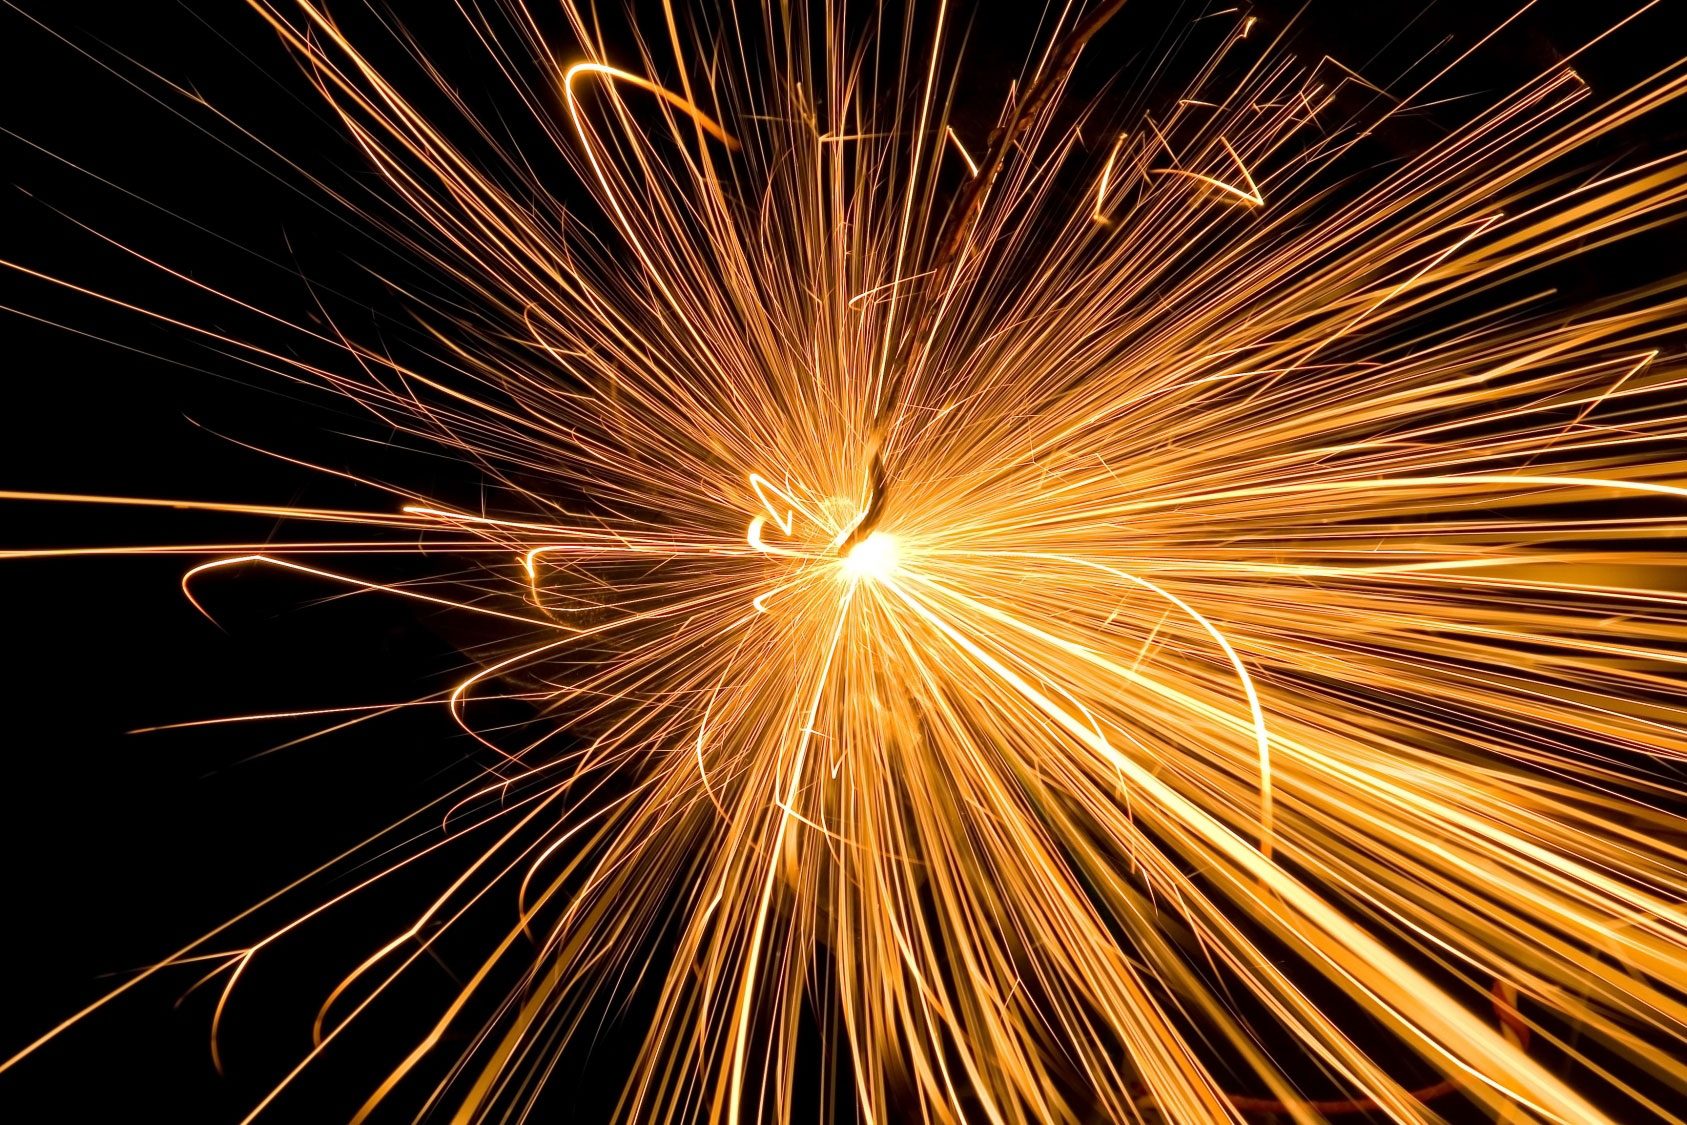 Welding-and-fabrication-welding-spark.jpg